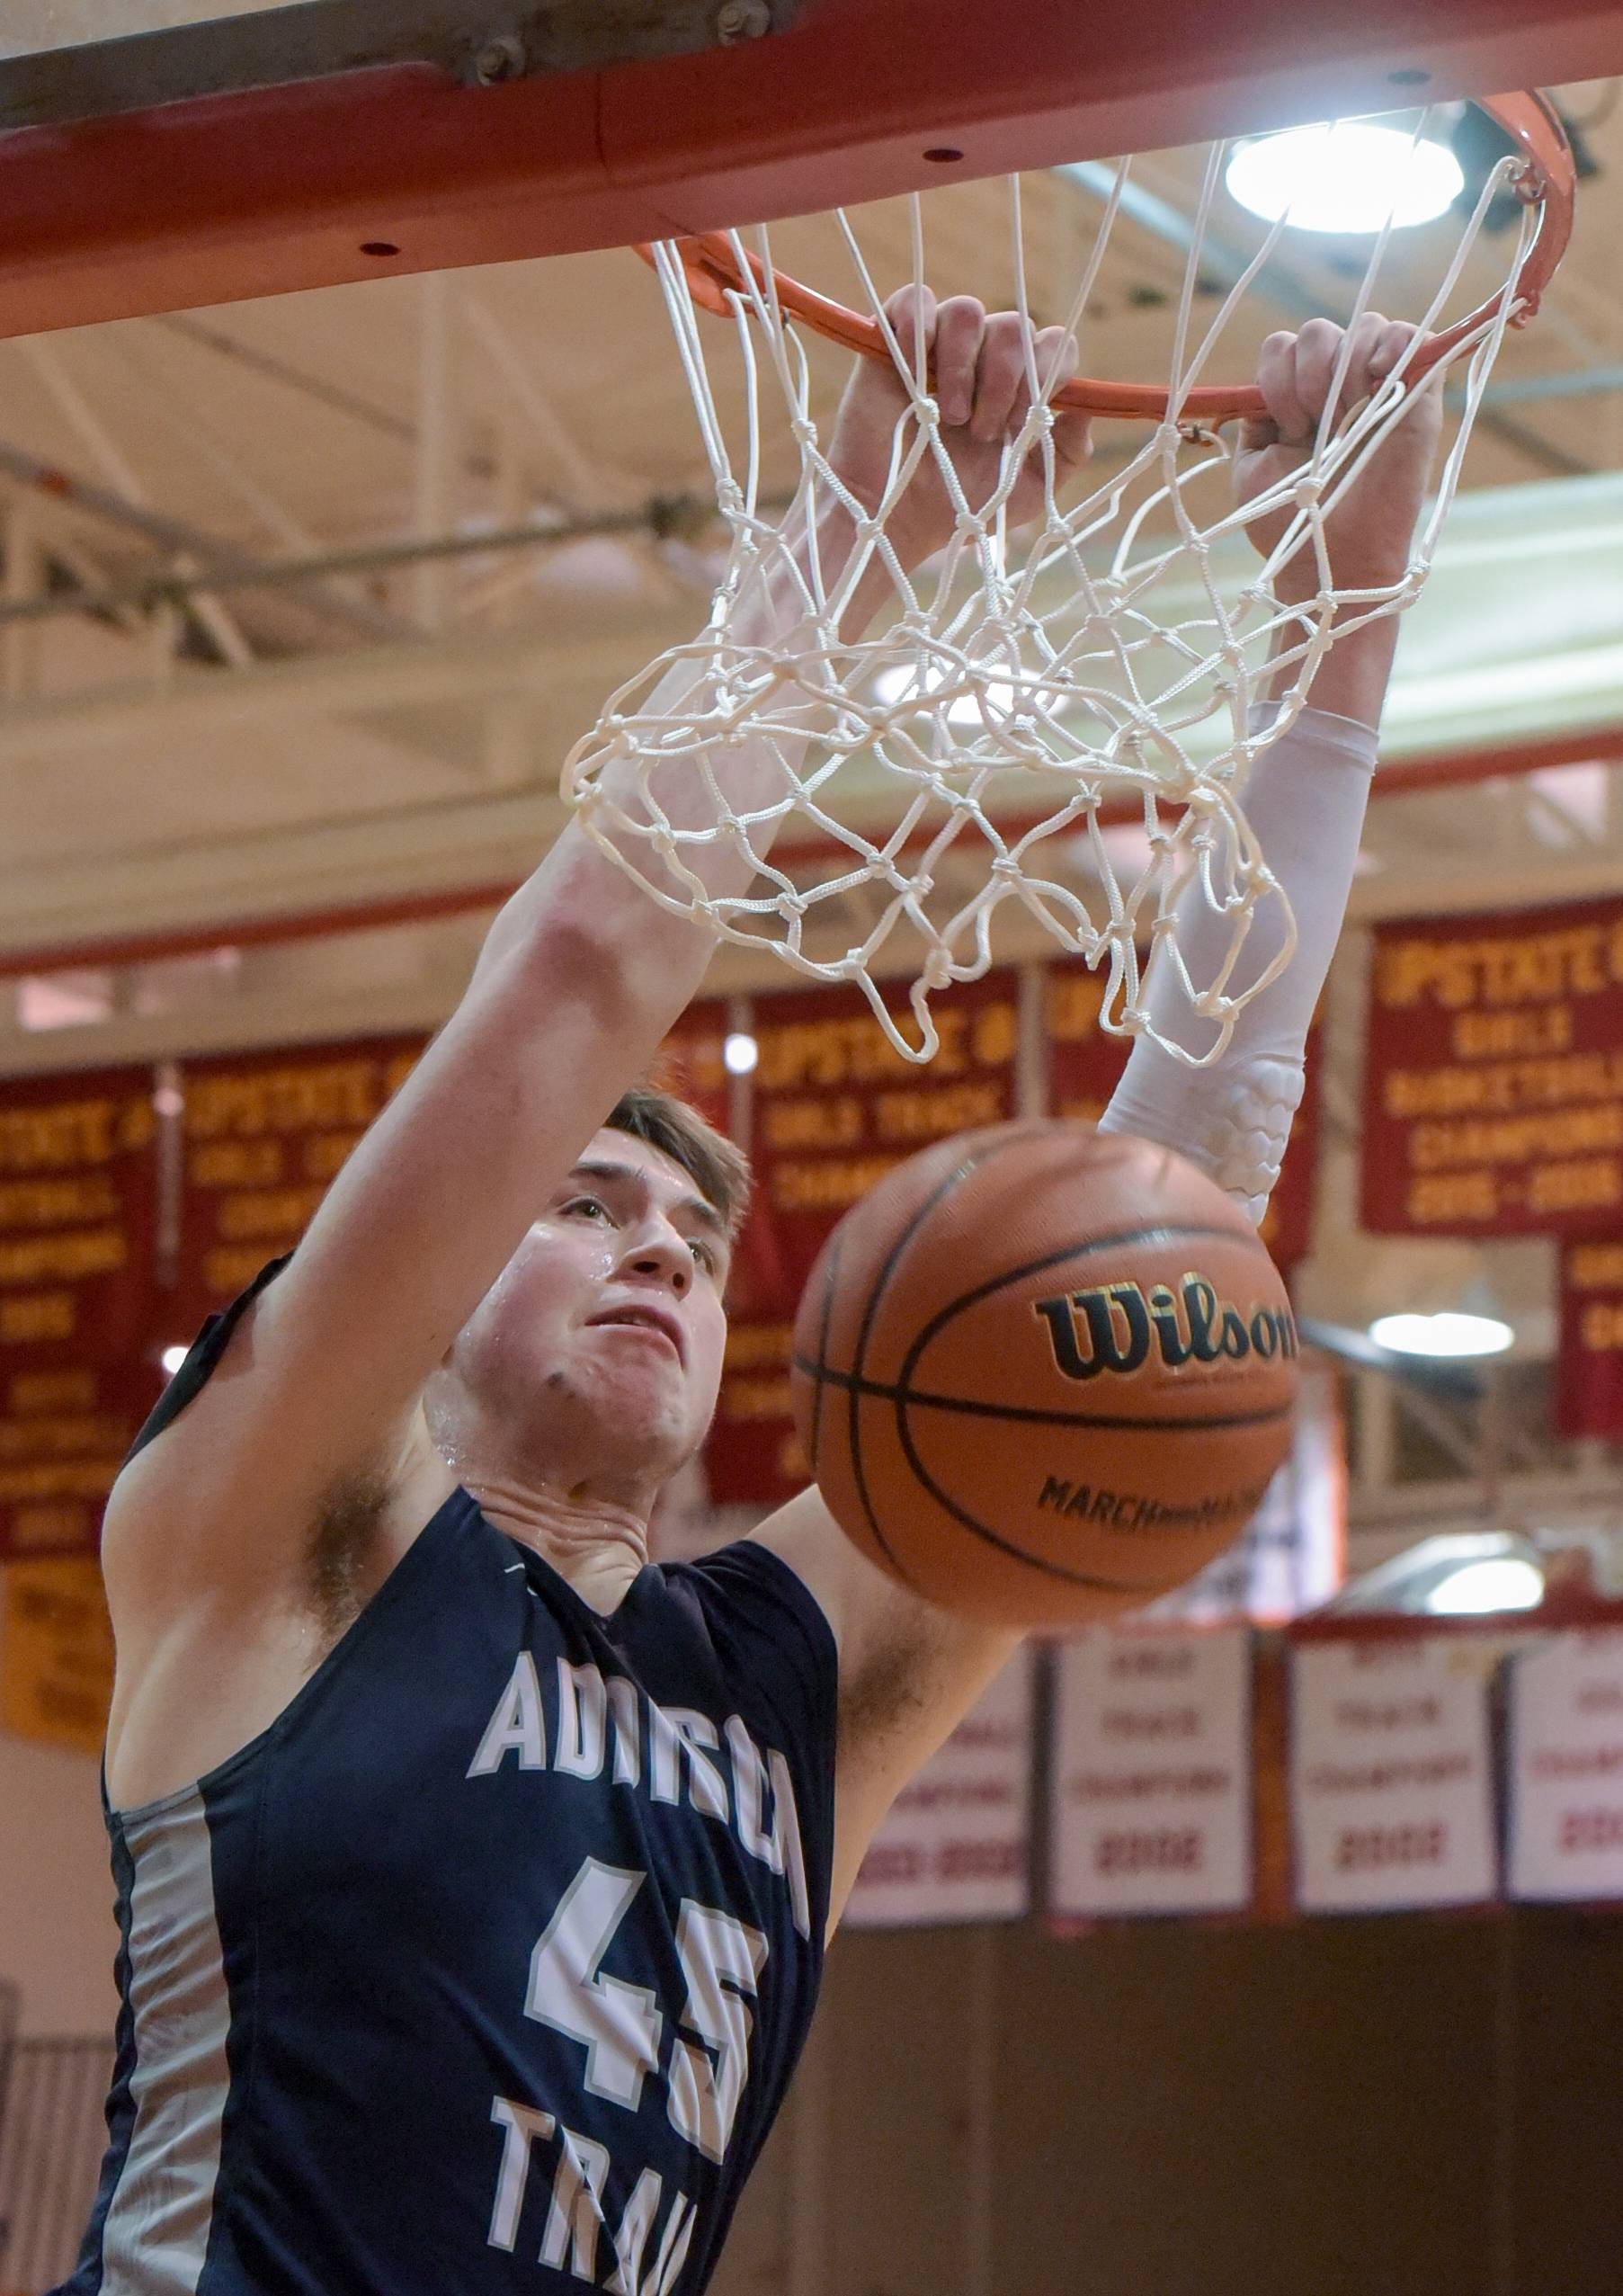 Addision Trail, led by Colton Noel, hopes to win its first regional championship since 1980 when it plays Naperville North on Friday night at Batavia.